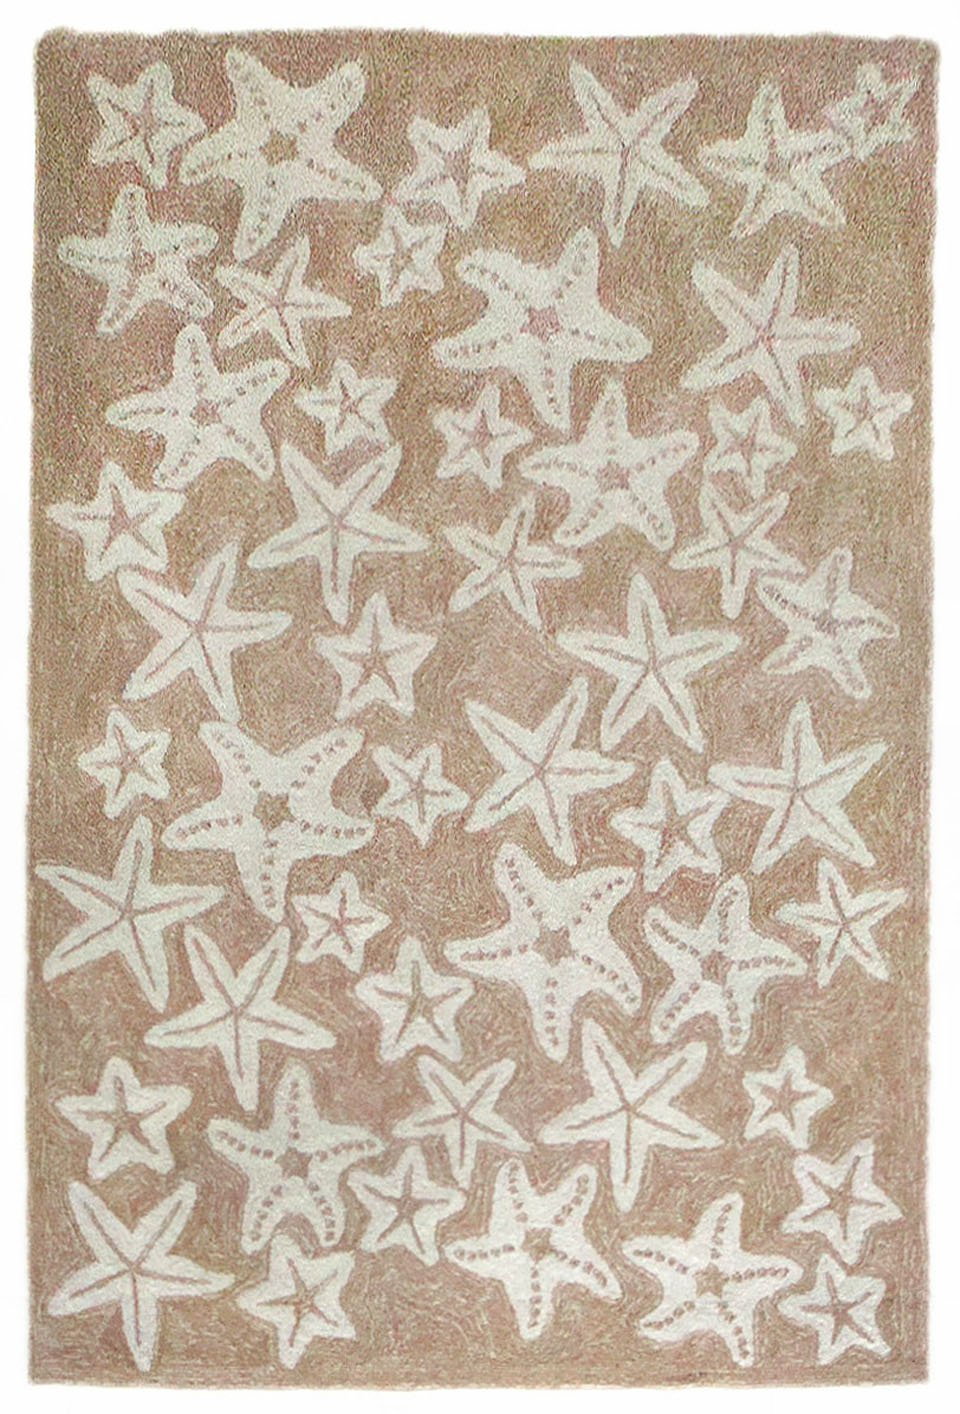 Liora Manne Monaco Sea Star Rug, Neutral, 24x8' 24x8' The Trans Ocean Group CA0R8B01912